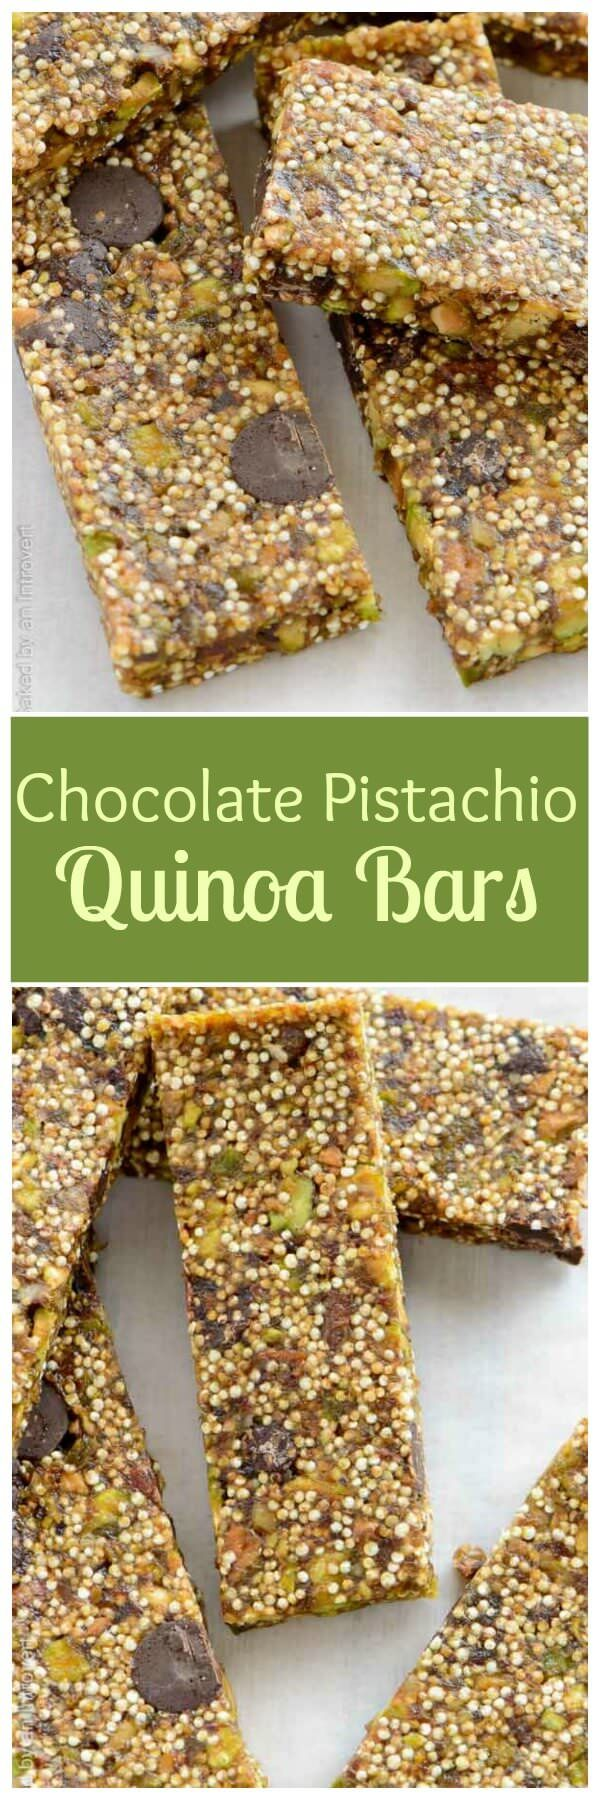 Chocolate Pistachio Quinoa Bars made with pistachios, chocolate chips, and dates. Satisfy your cravings with this delicious snack option. via @introvertbaker